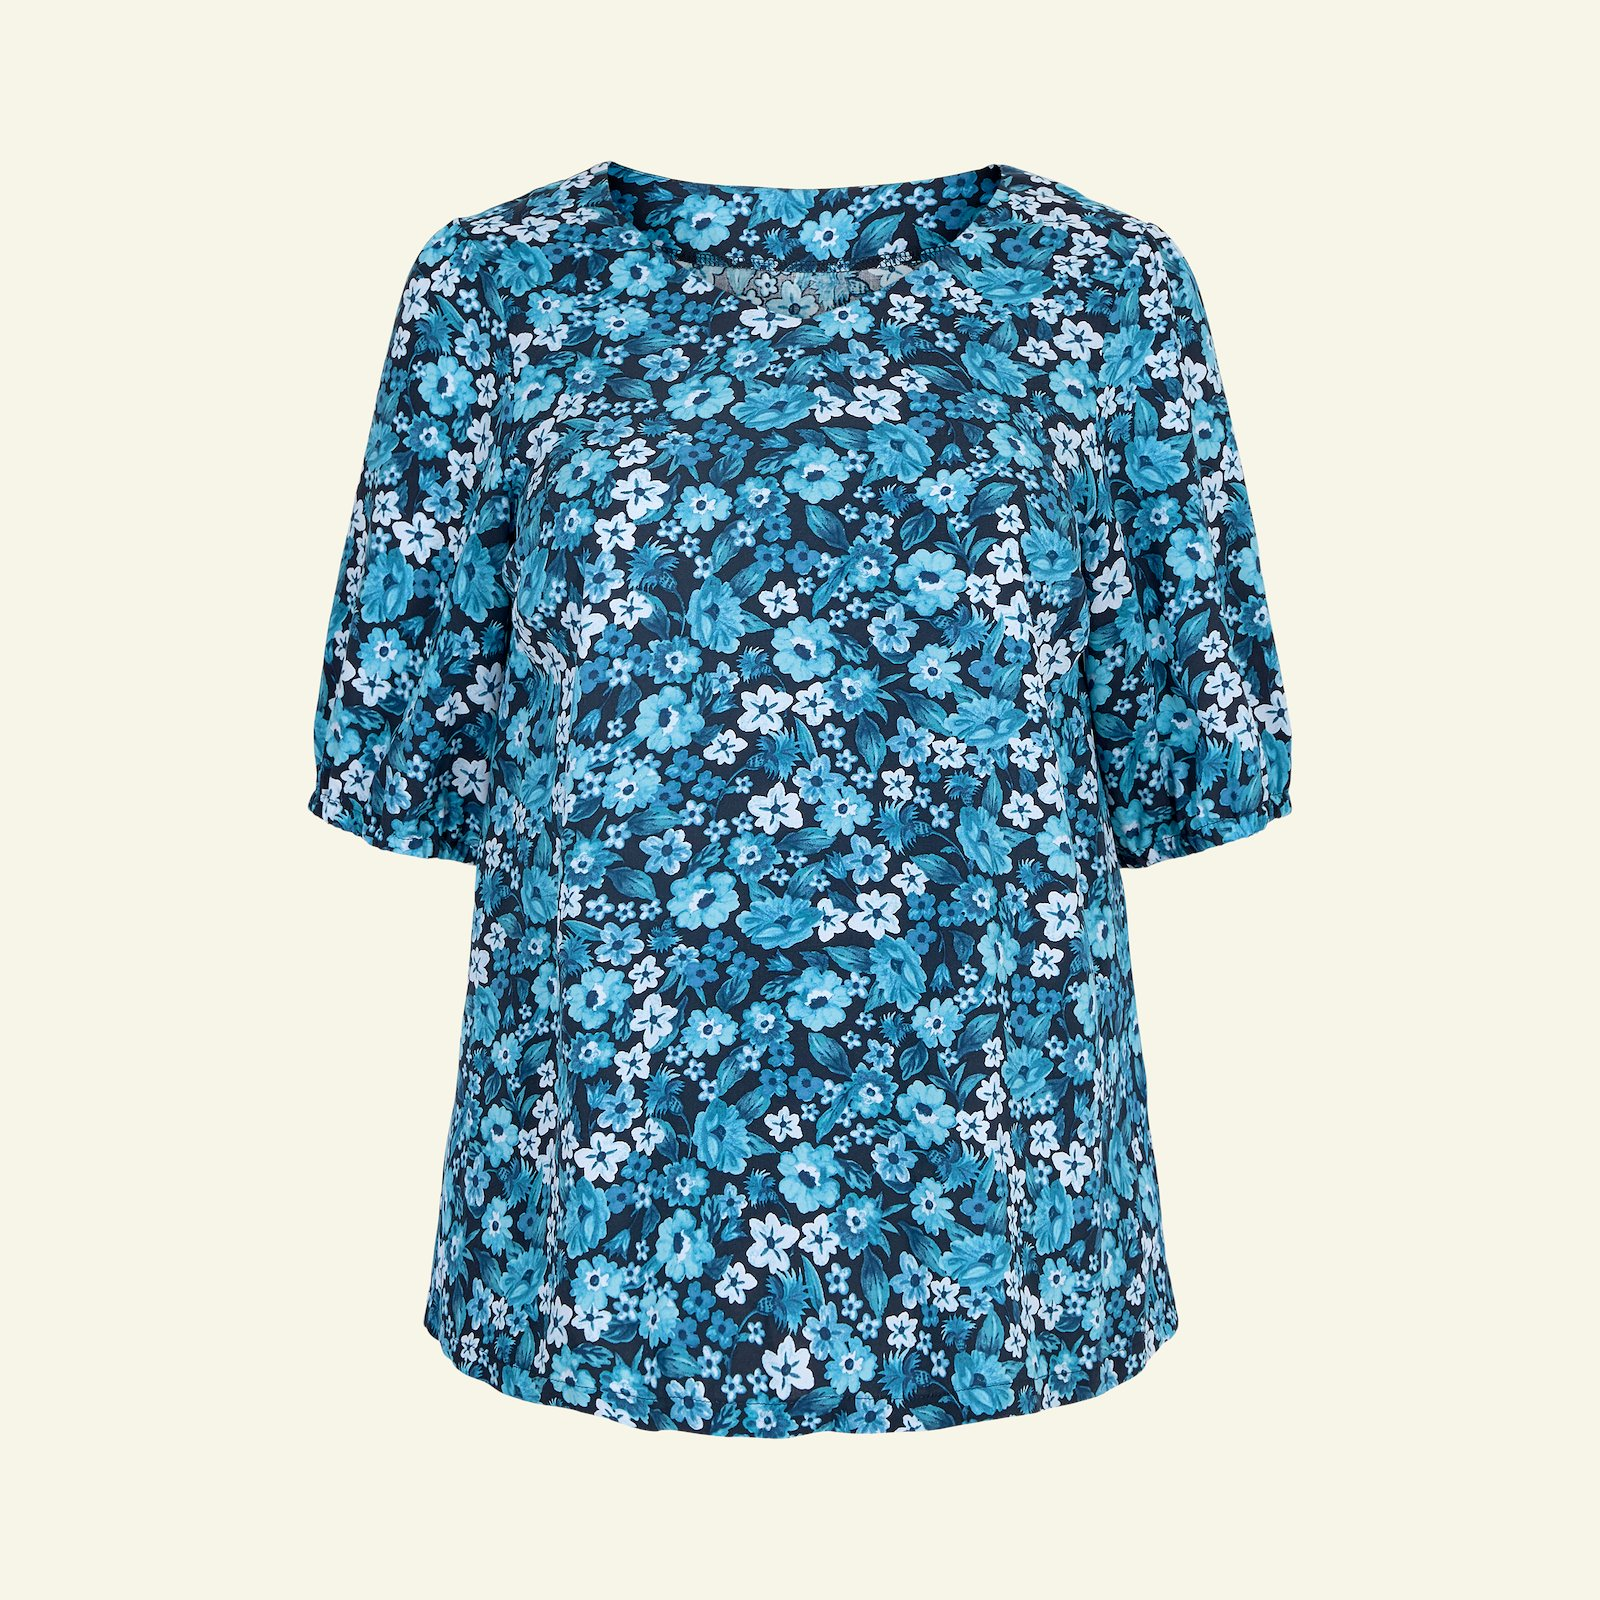 Blouse with long and short sleeve, 46/18 p72006_710656_sskit